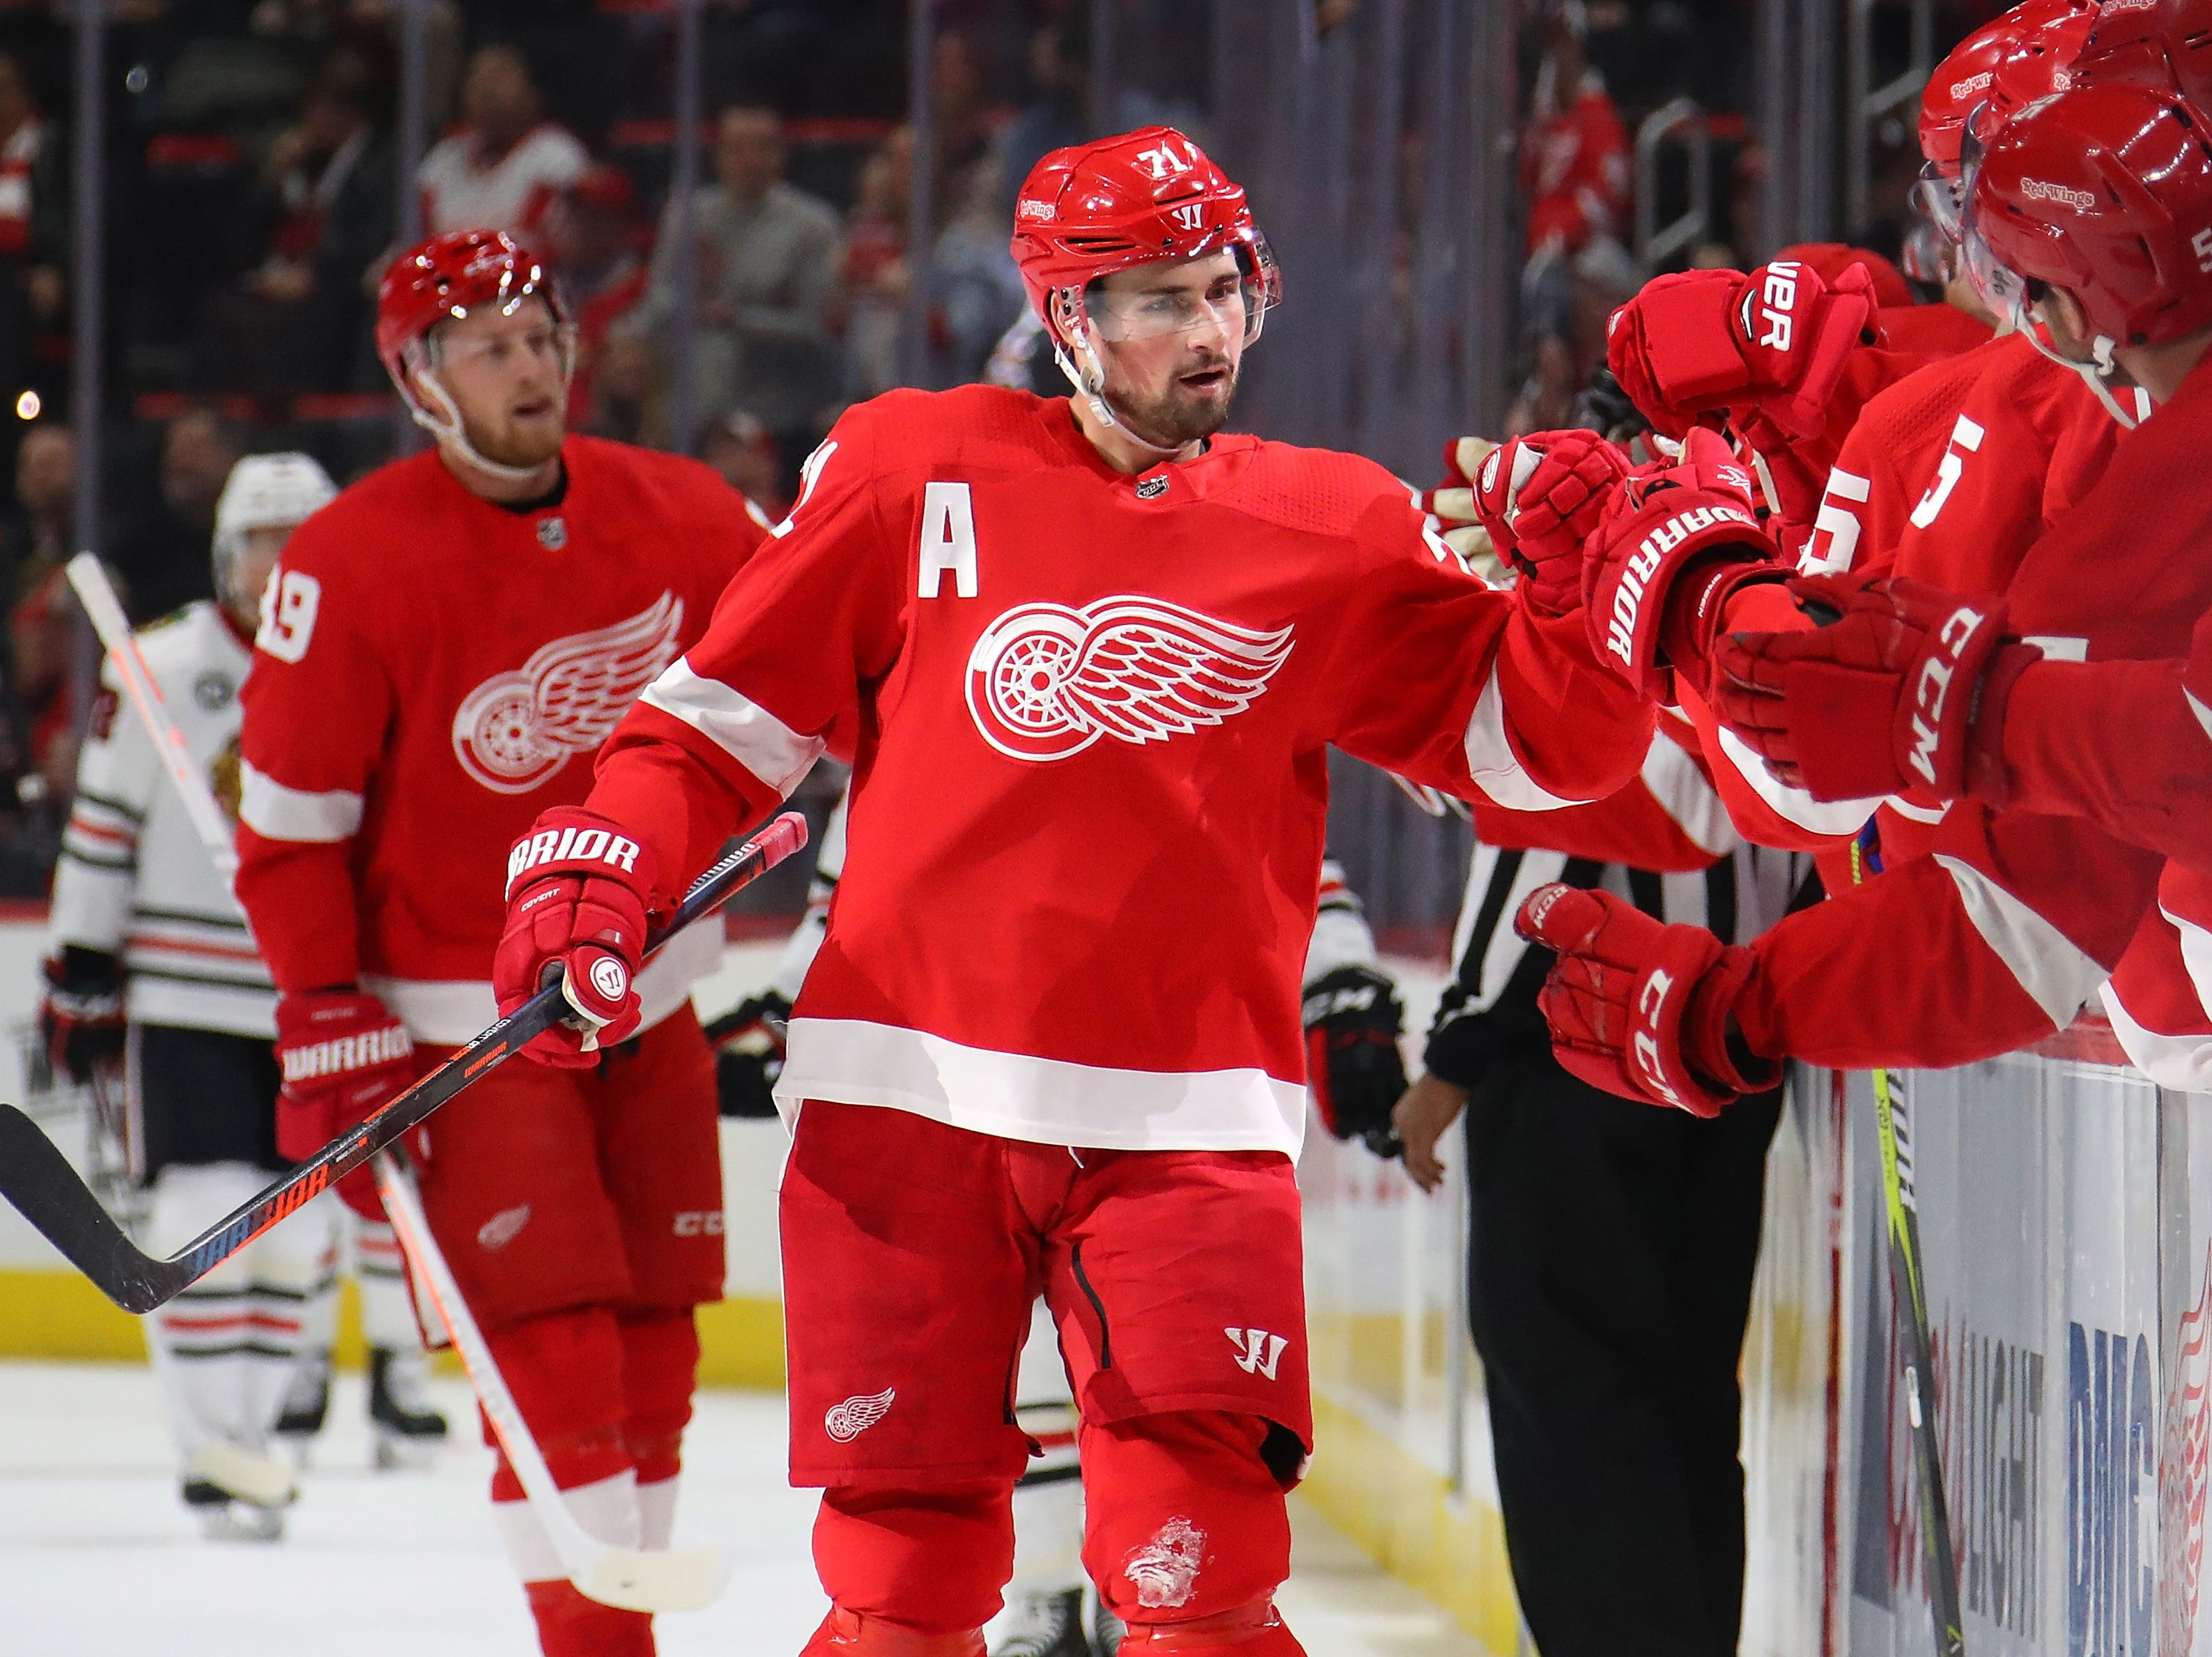 Dylan Larkin #71 of the Detroit Red Wings celebrates his first period goal with teammates while playing the Chicago Blackhawks at Little Caesars Arena on February 20, 2019 in Detroit, Michigan.